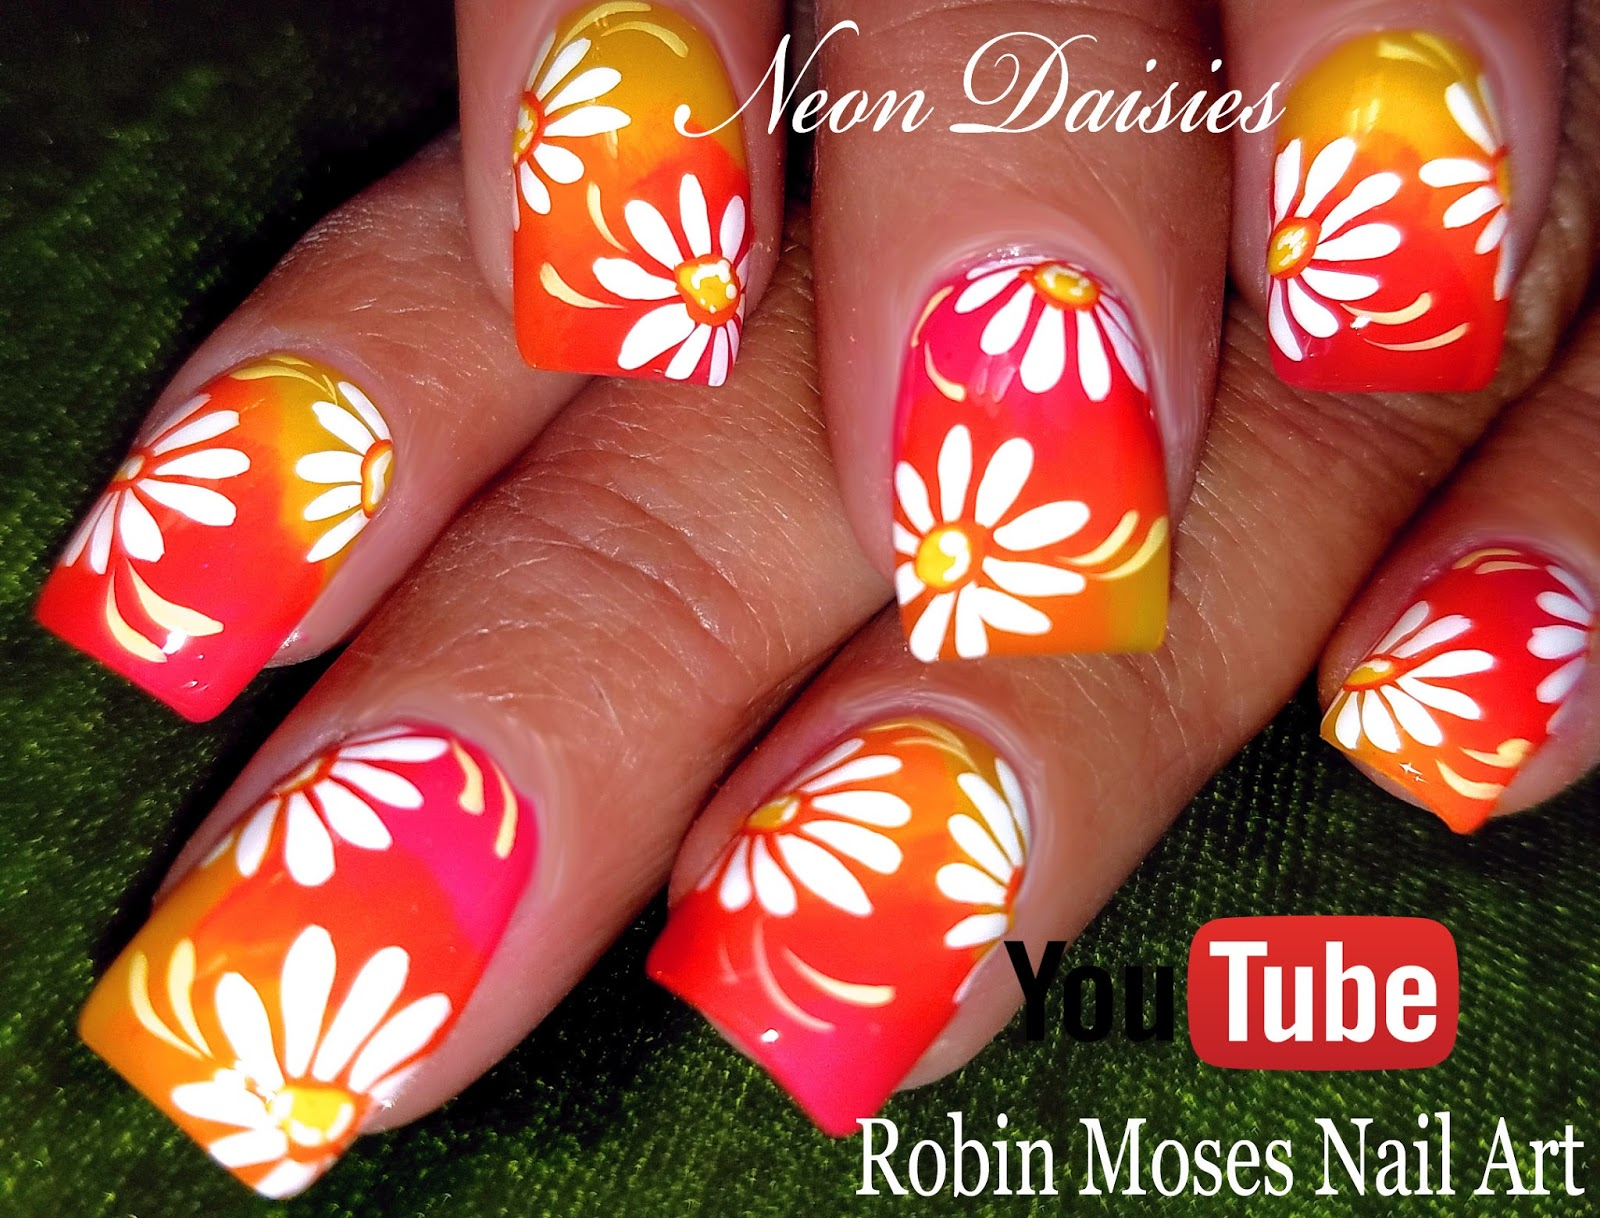 Robin moses nail art diy hand painted neon flower nail art design please shout out like comment and subscribe to those who inspire you and keep our nail art community fun and full of new ideas prinsesfo Gallery